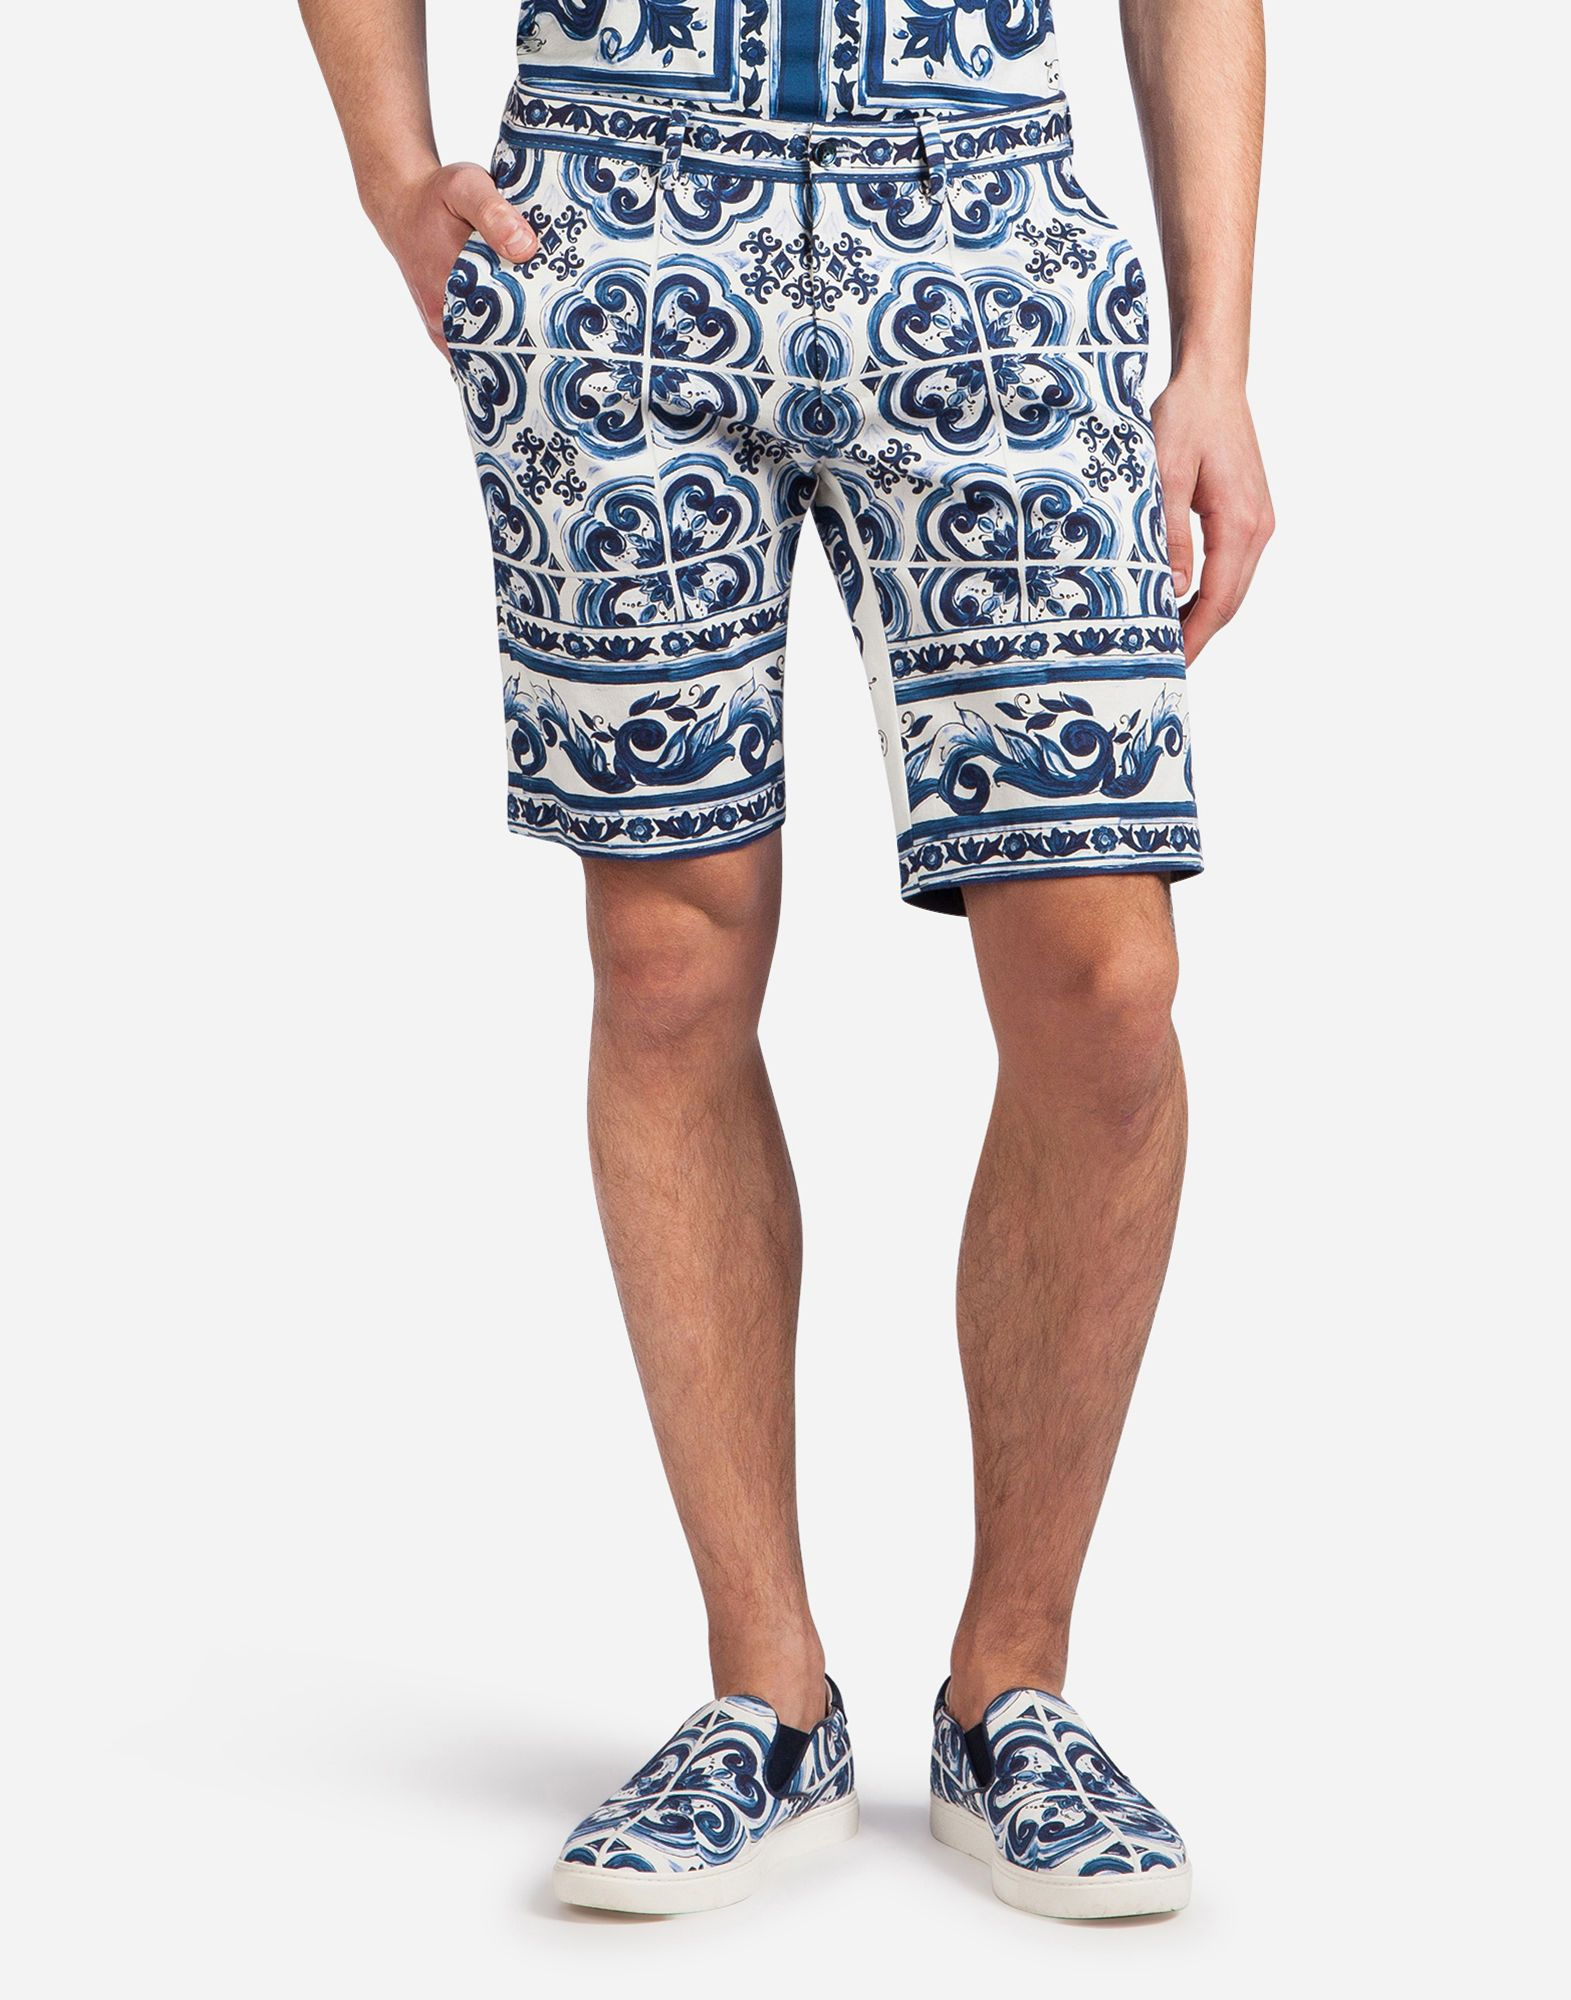 dd9bb729f5 DOLCE & GABBANA Bermuda Shorts In Printed Cotton. #dolcegabbana #cloth #